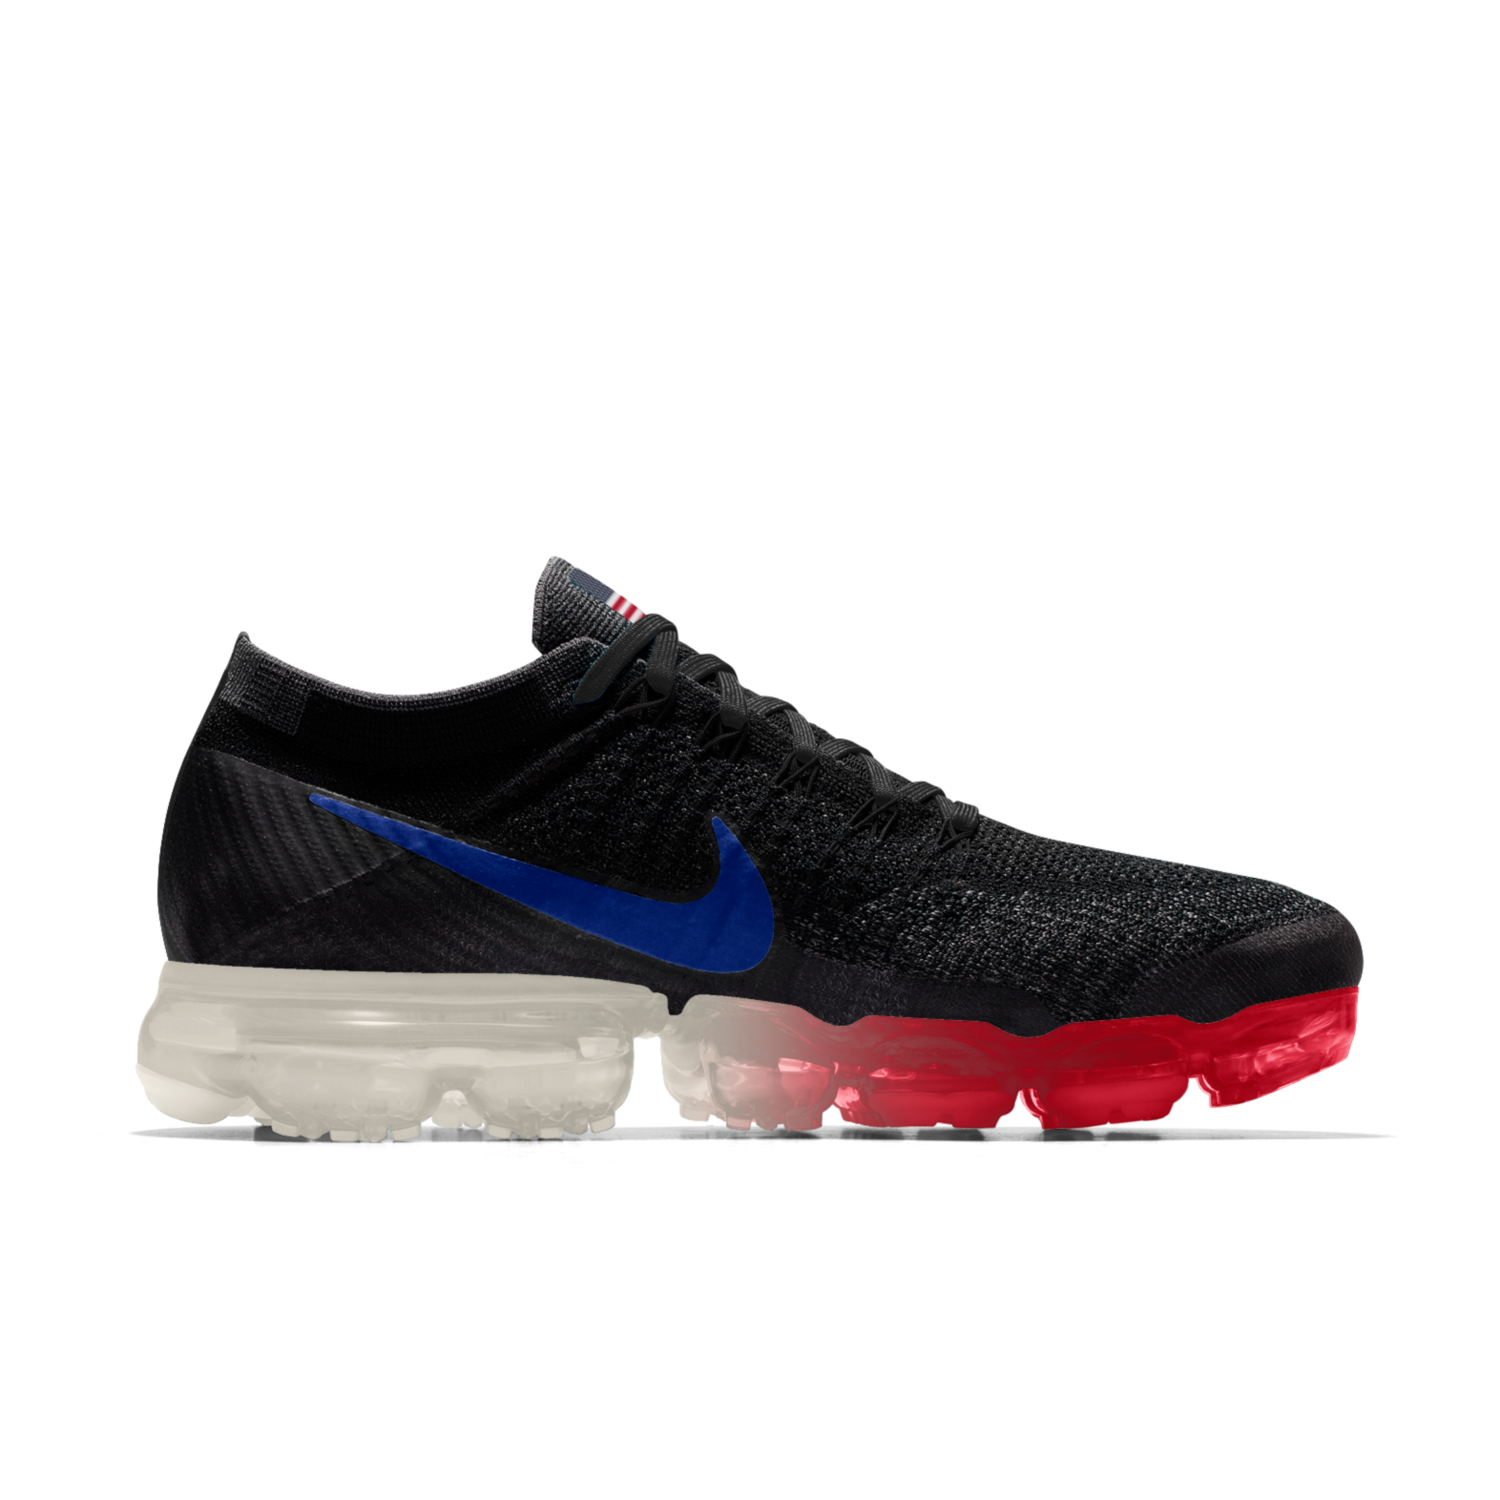 nike-air-vapormax-id-world-flags-release-20170808